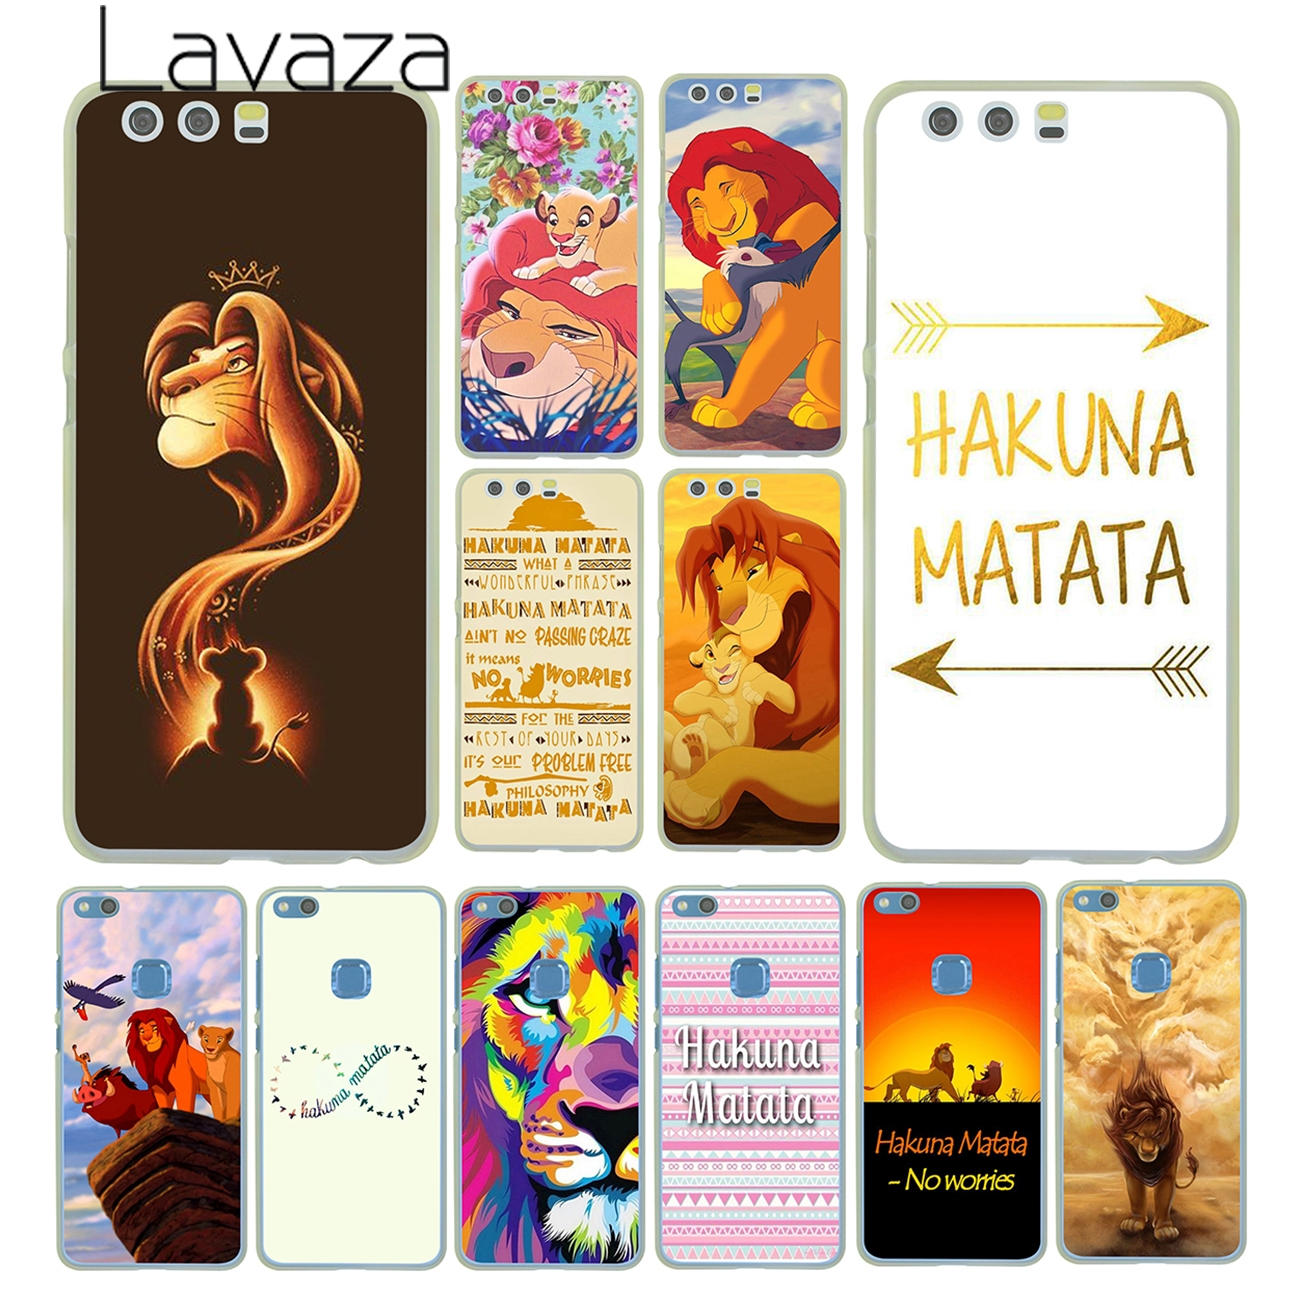 Lavaza The <font><b>Hakuna</b></font> <font><b>Matata</b></font> <font><b>Lion</b></font> <font><b>King</b></font> Case for Huawei P30 P20 Pro P9 P10 Plus P8 Lite Mini 2016 2017 P smart Z 2019 Cover image